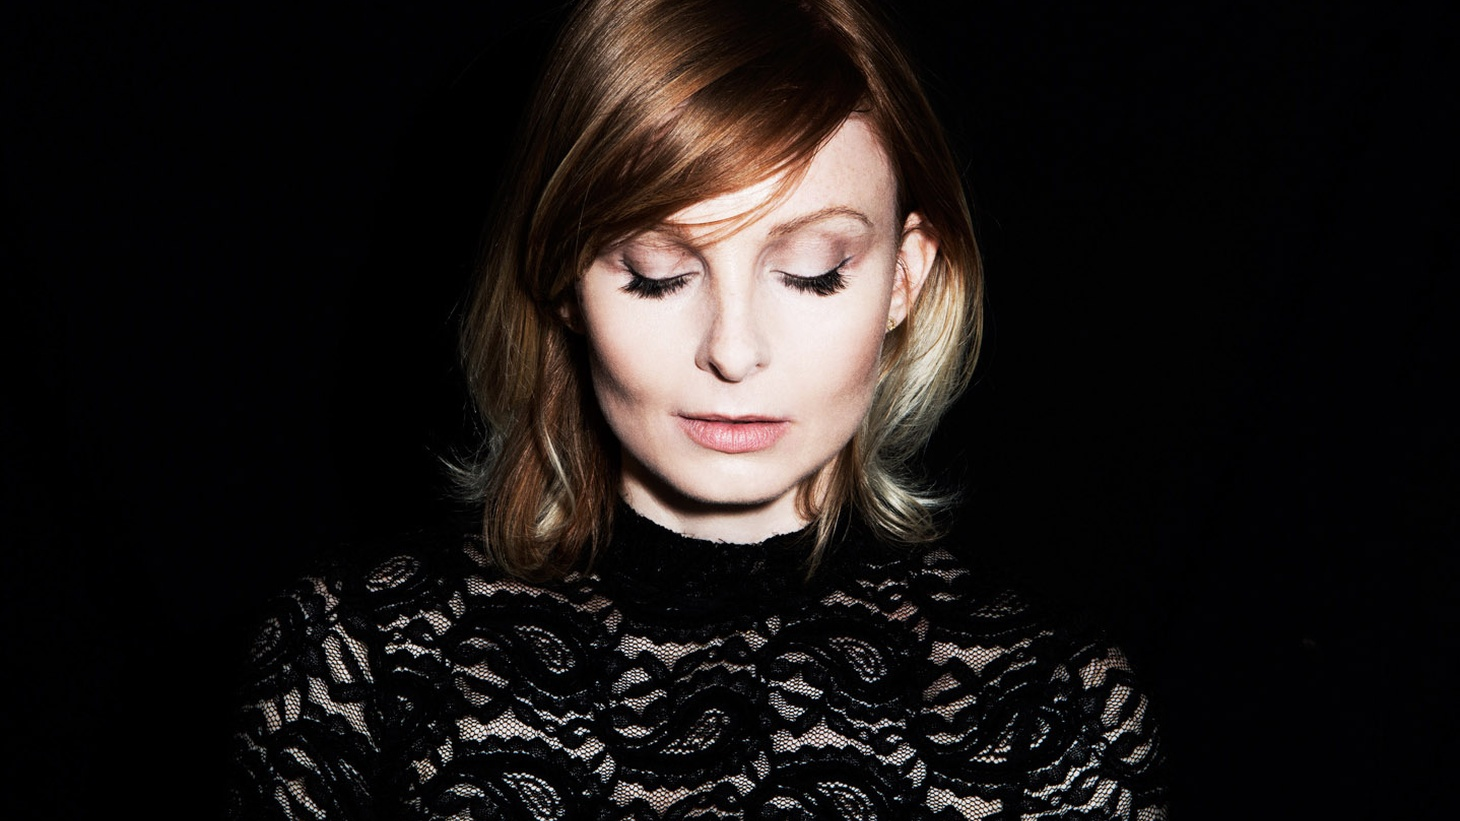 Groove Armada collaborator Becky Jones, aka Saint Saviour, teams up with producer/arranger-extraordinaire Bill Ryder-Jones for a stripped-down, folk-flavored look at her home region of North England.